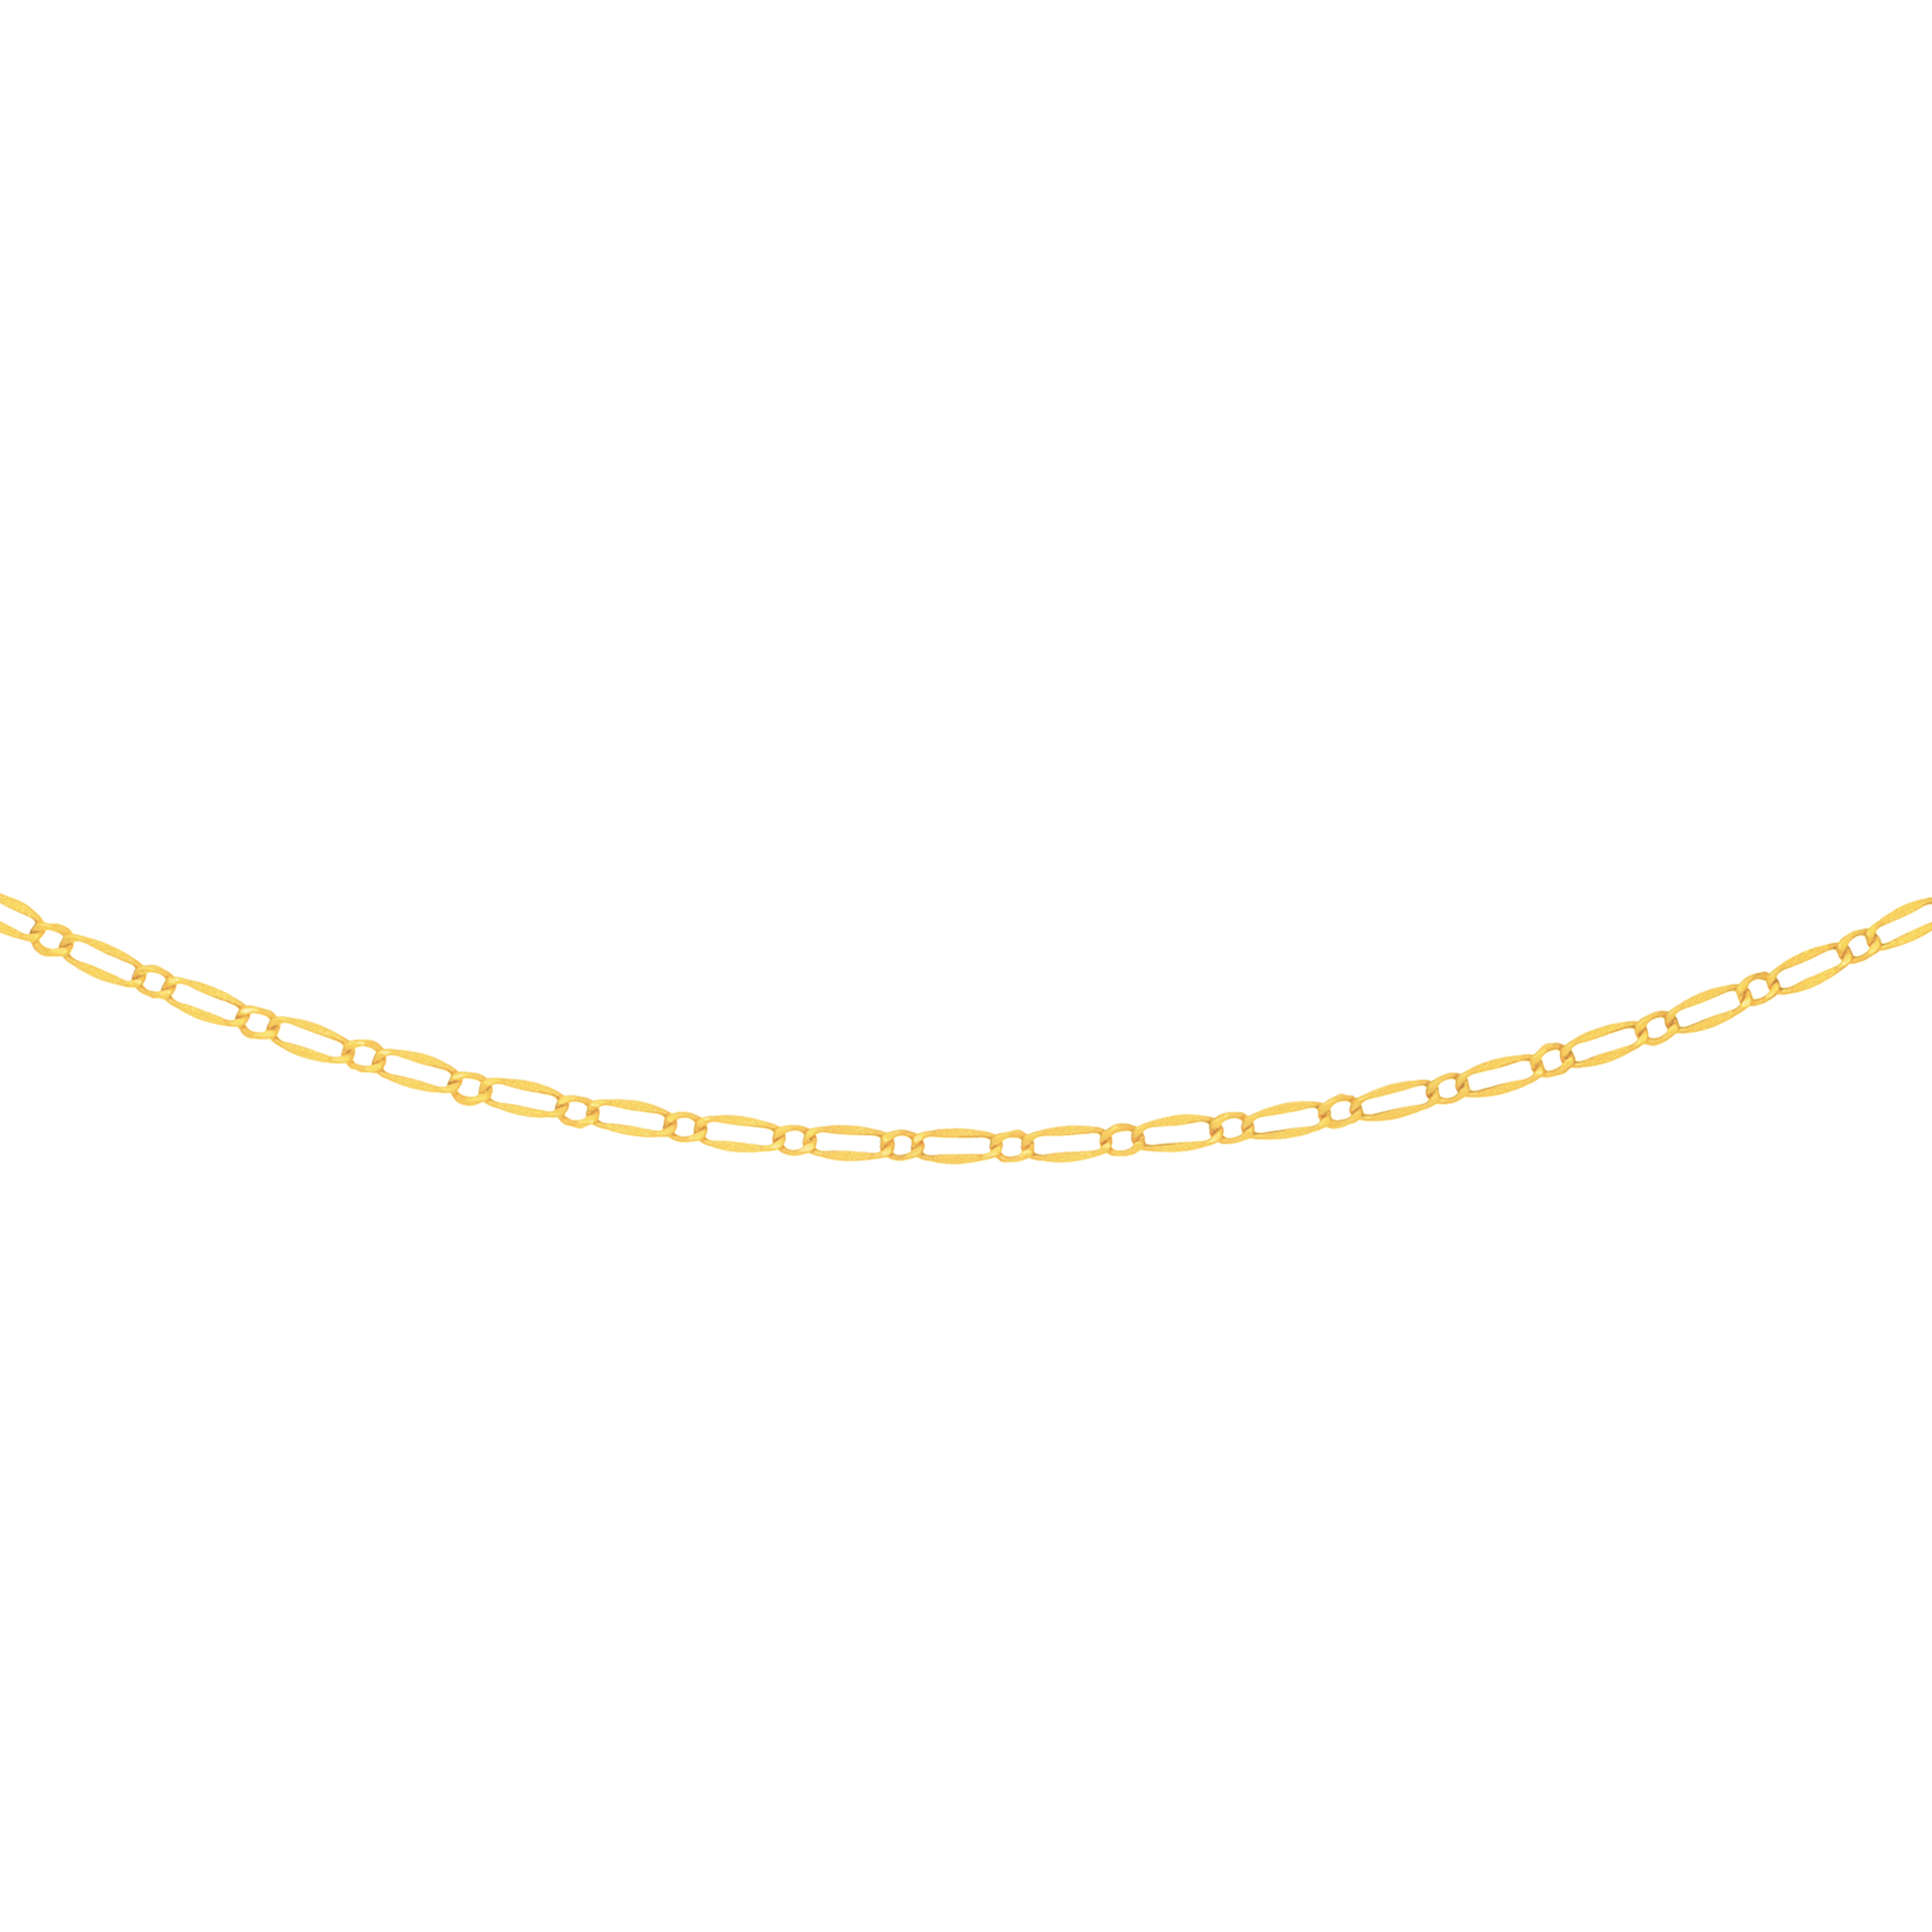 LUXURMAN Solid 14k Gold Rolo Chain For Women Polished Link 3.5mm Wide